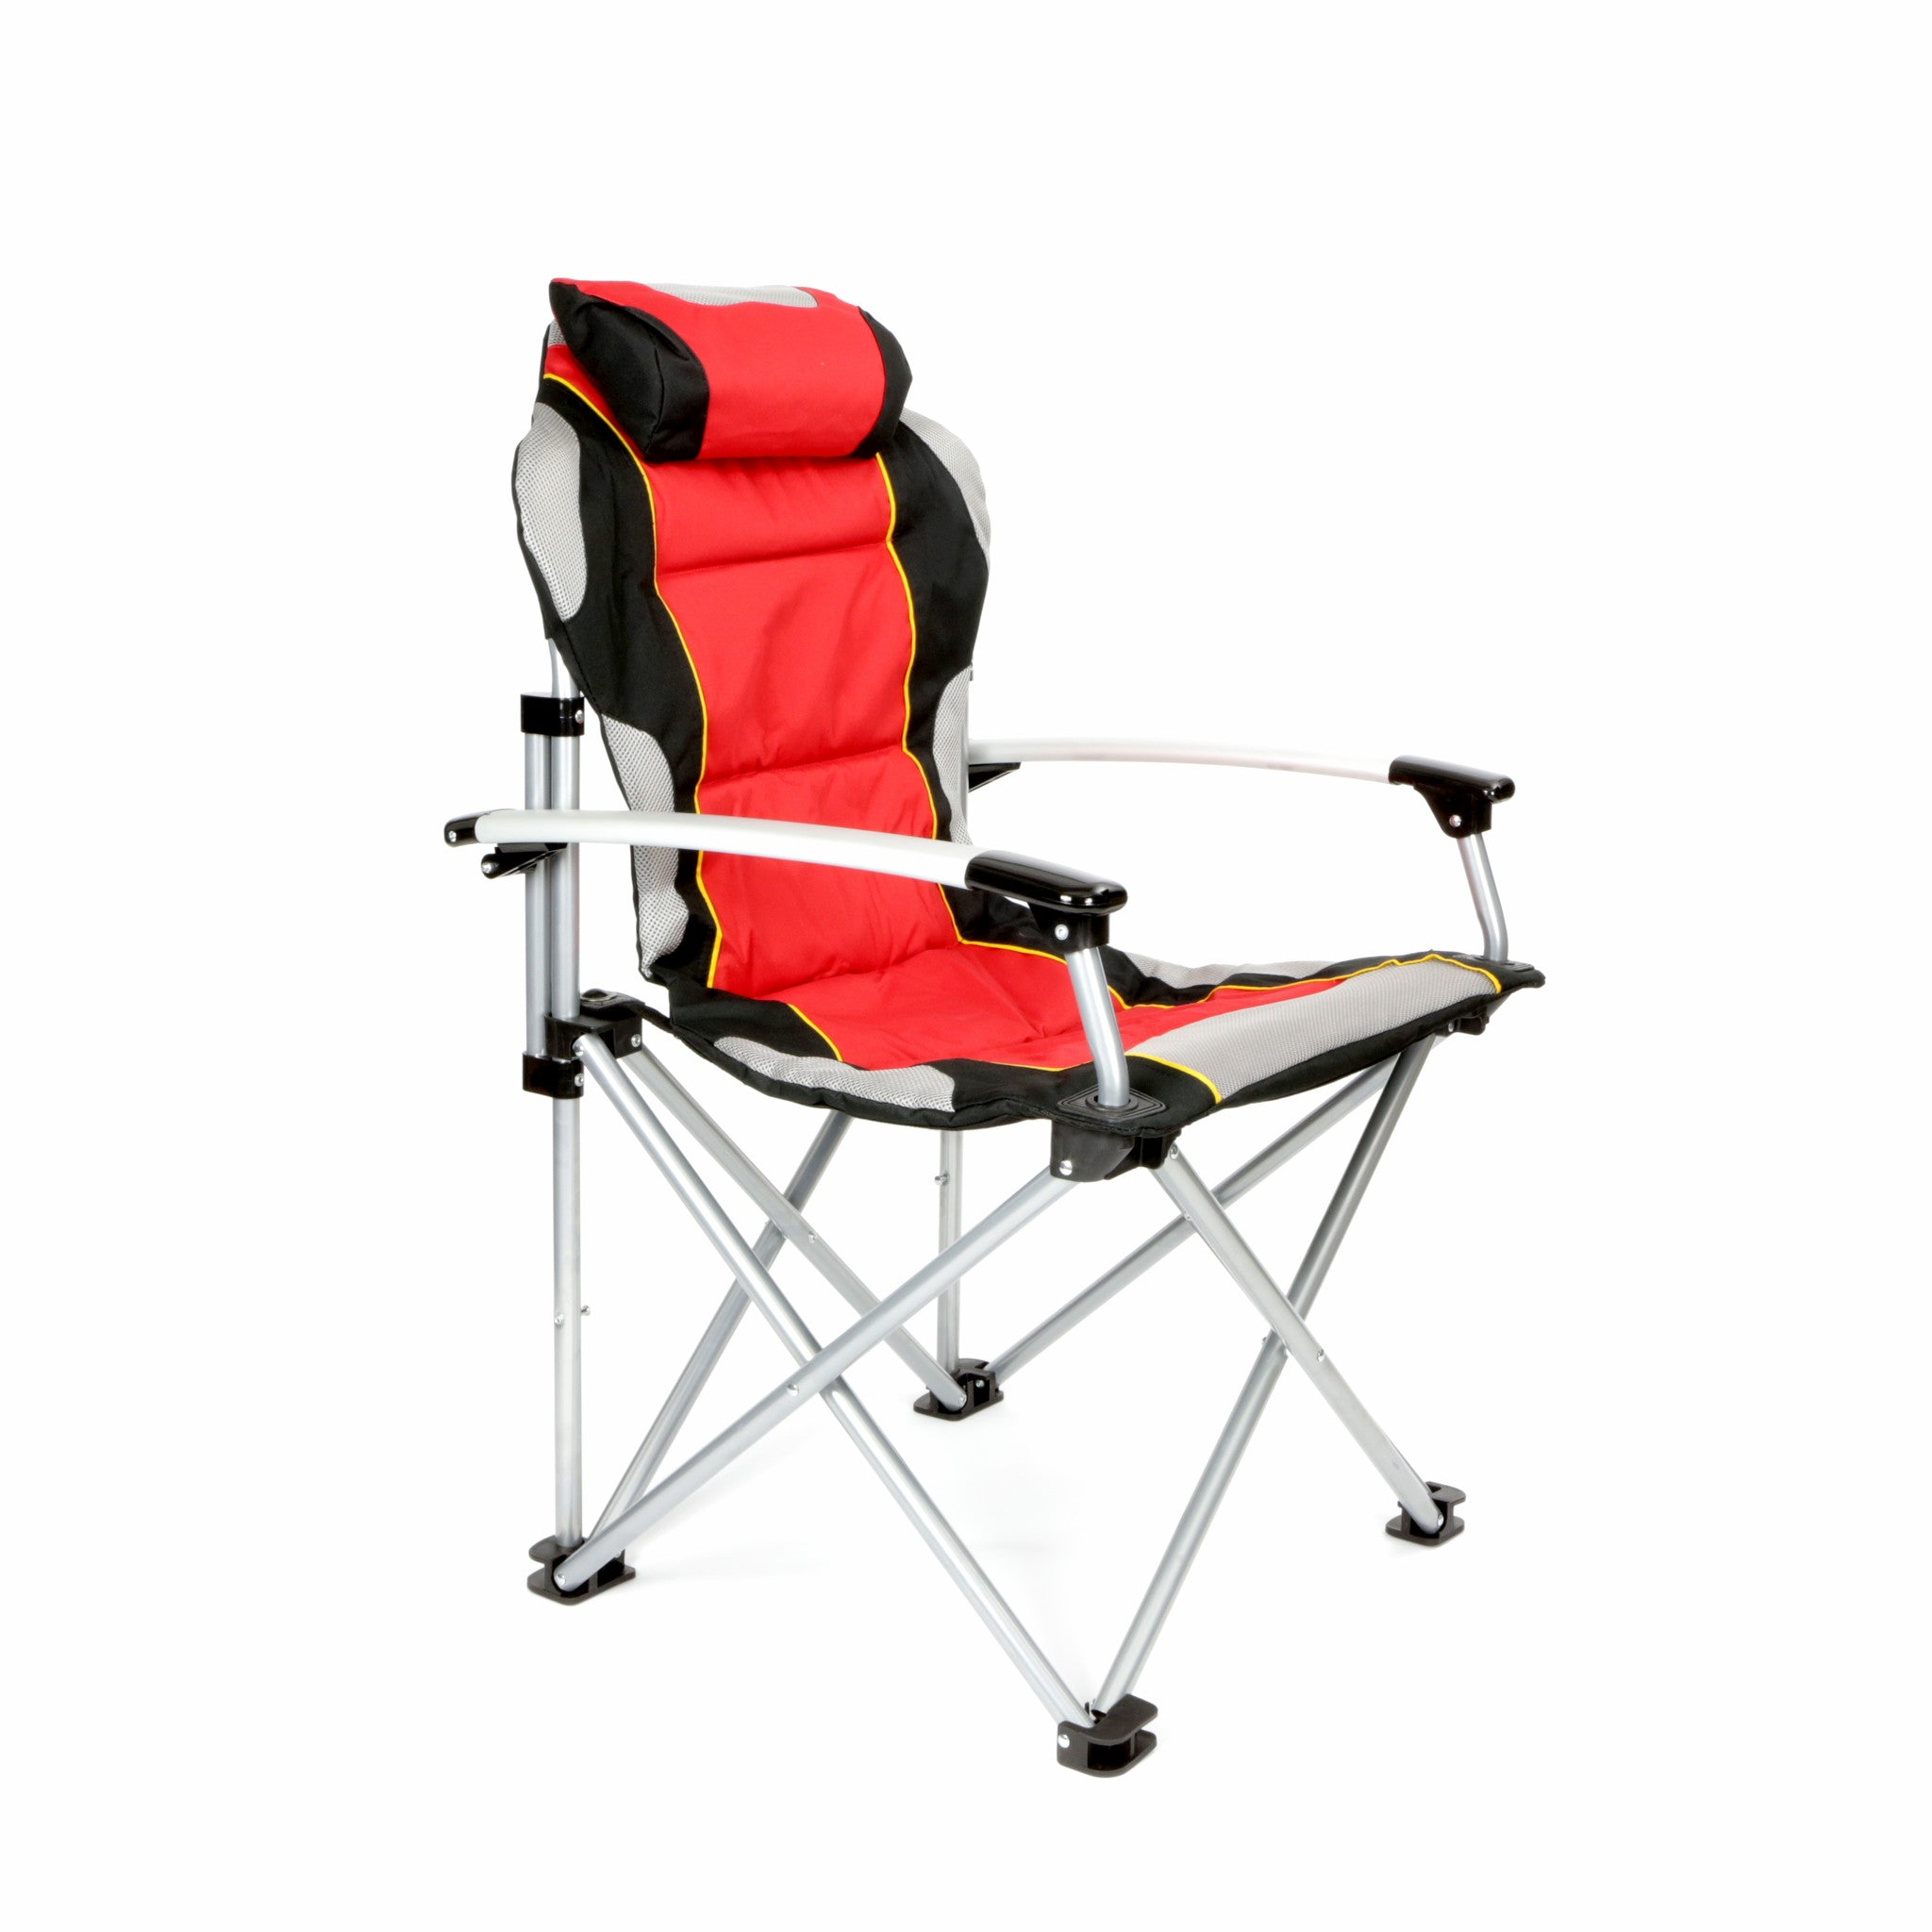 ProMech Racing Fold Up Paddock Chair with Carry Bag Scarlet Red